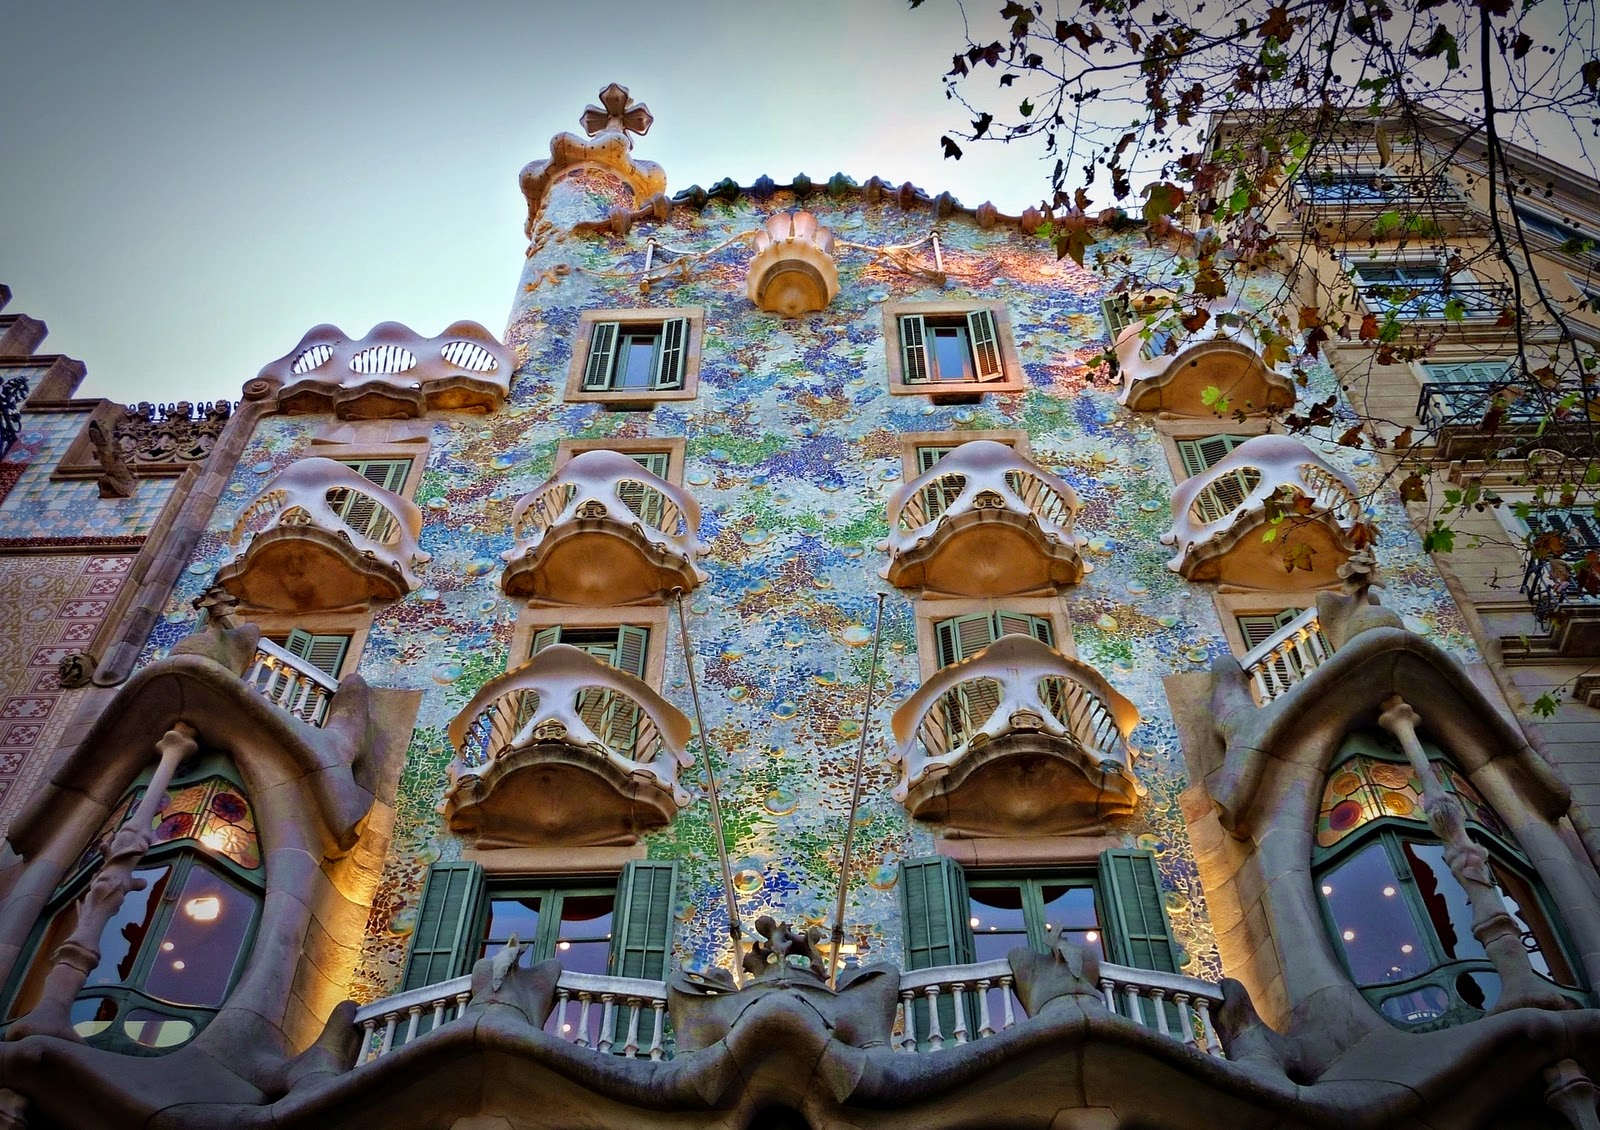 casa batll de gaud em barcelona dicas de barcelona e espanha. Black Bedroom Furniture Sets. Home Design Ideas